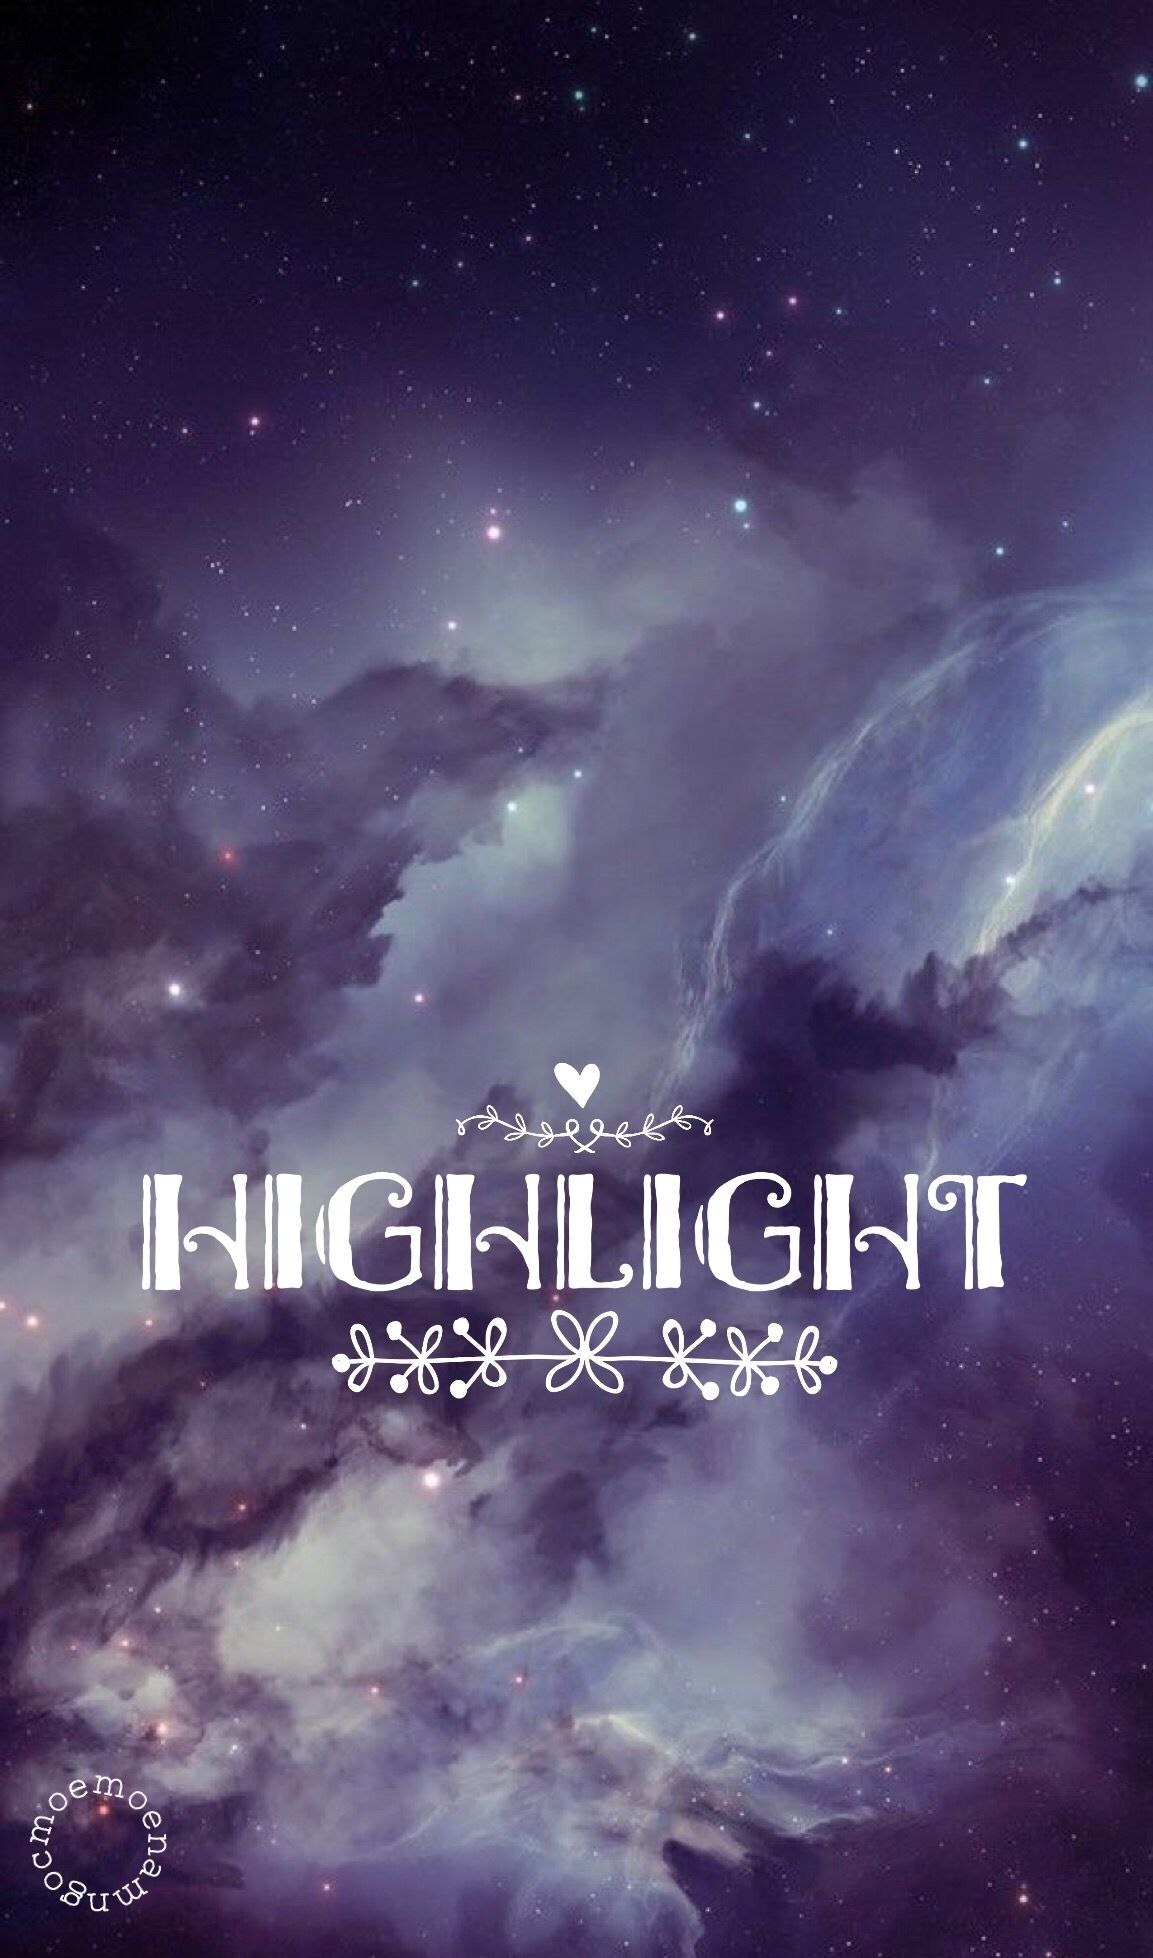 Free Download Hightlight Kpop Iphone Wallpaper Galaxy Aesthetic Pastel 1153x1958 For Your Desktop Mobile Tablet Explore 36 Wallpaper Galaxy Aesthetic Wallpaper Galaxy Aesthetic Aesthetic Wallpaper Aesthetic Wallpapers